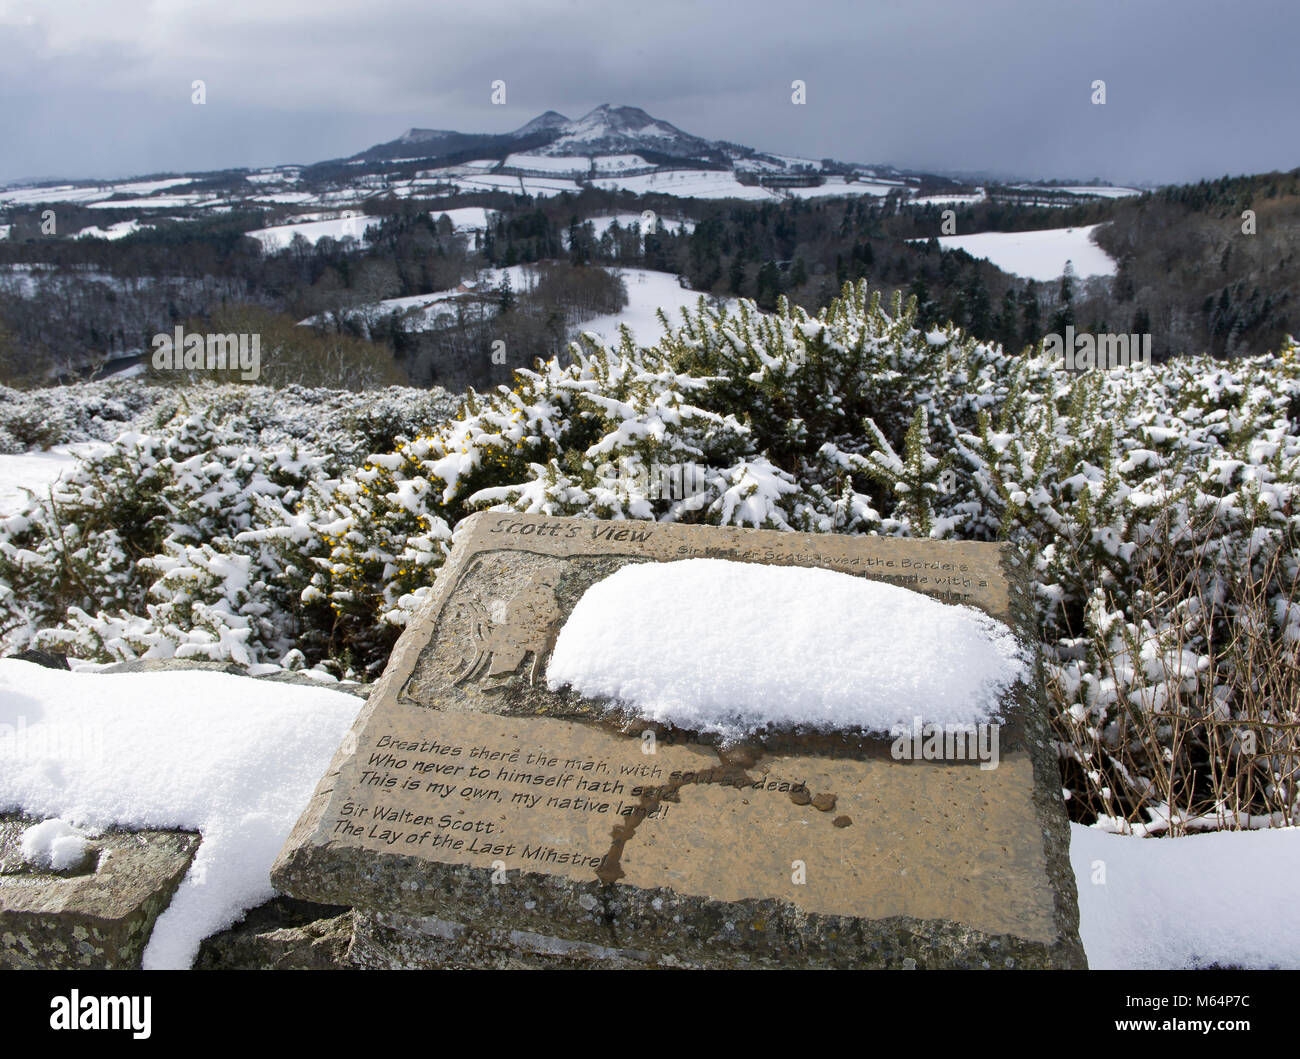 Scott's View, Bemersyde near Melrose under an blanket of snow. - Stock Image